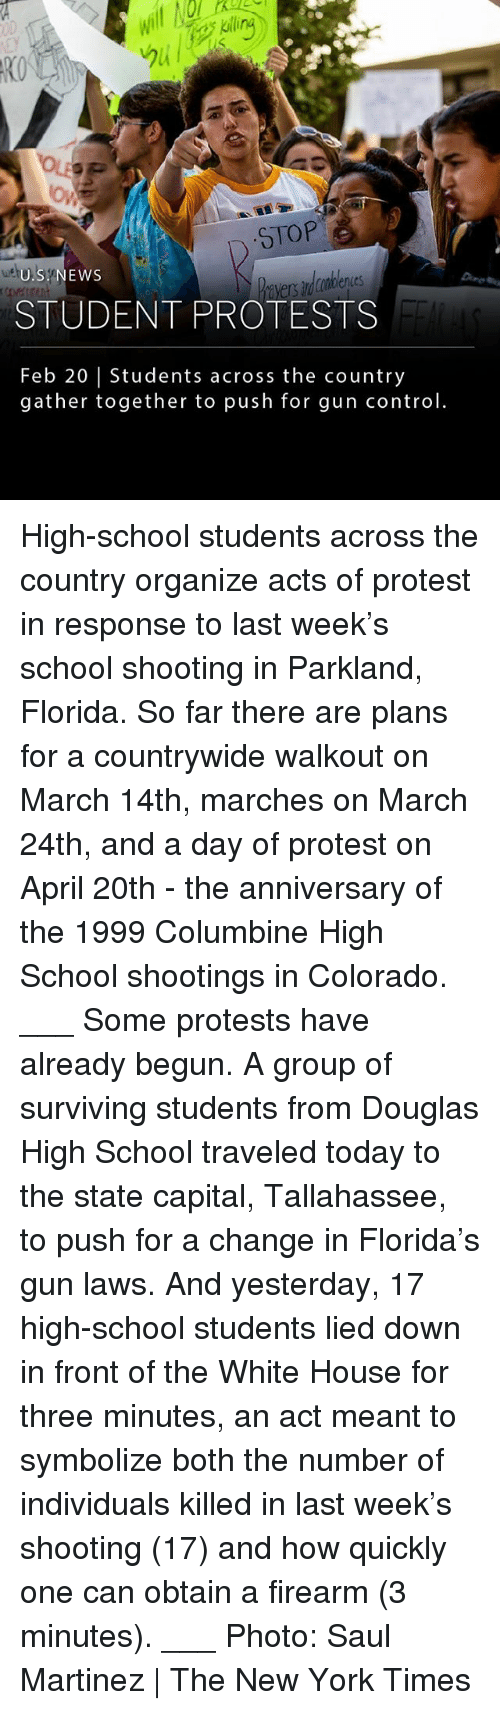 April 20th: RO  STOP  U.S NEWS  STUDENT PROTESTS  Feb 20 | Students across the country  gather together to push for gun contro High-school students across the country organize acts of protest in response to last week's school shooting in Parkland, Florida. So far there are plans for a countrywide walkout on March 14th, marches on March 24th, and a day of protest on April 20th - the anniversary of the 1999 Columbine High School shootings in Colorado. ___ Some protests have already begun. A group of surviving students from Douglas High School traveled today to the state capital, Tallahassee, to push for a change in Florida's gun laws. And yesterday, 17 high-school students lied down in front of the White House for three minutes, an act meant to symbolize both the number of individuals killed in last week's shooting (17) and how quickly one can obtain a firearm (3 minutes). ___ Photo: Saul Martinez | The New York Times